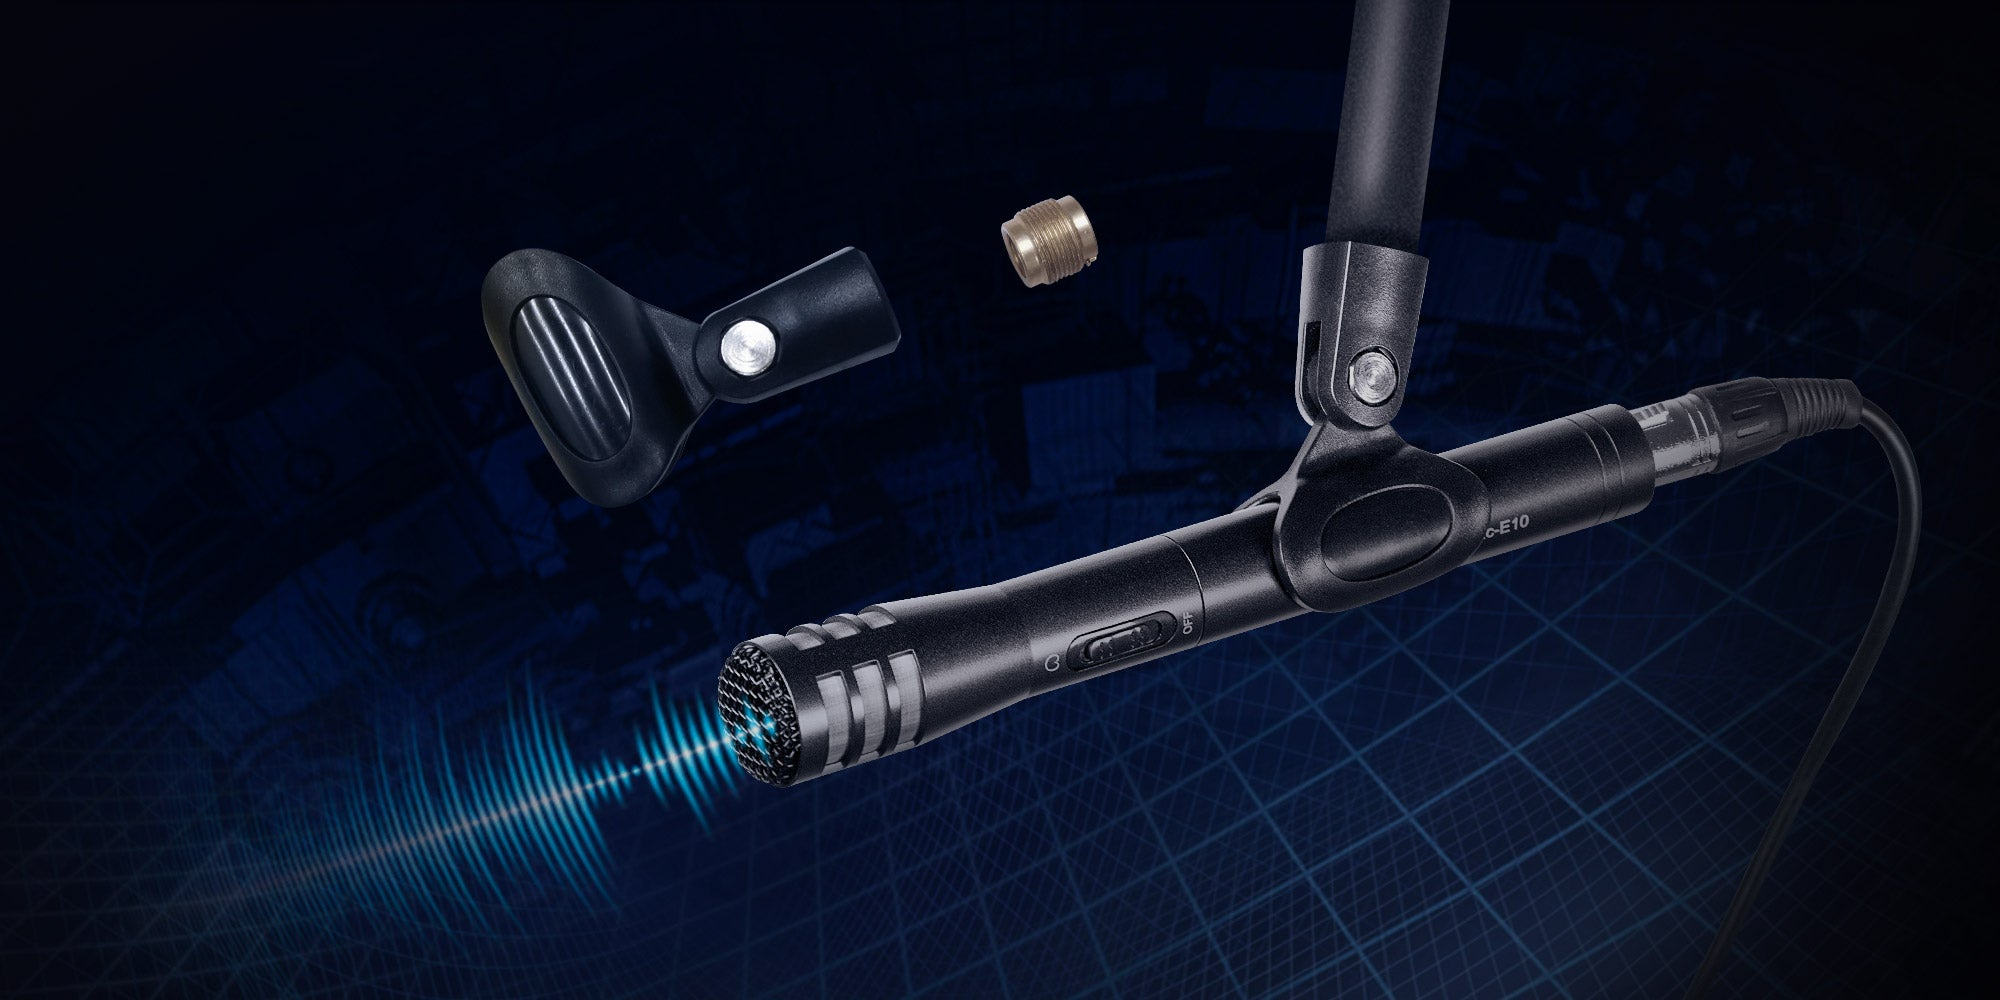 SYNCO Mic-E10 Mic Mount for Extended Usages